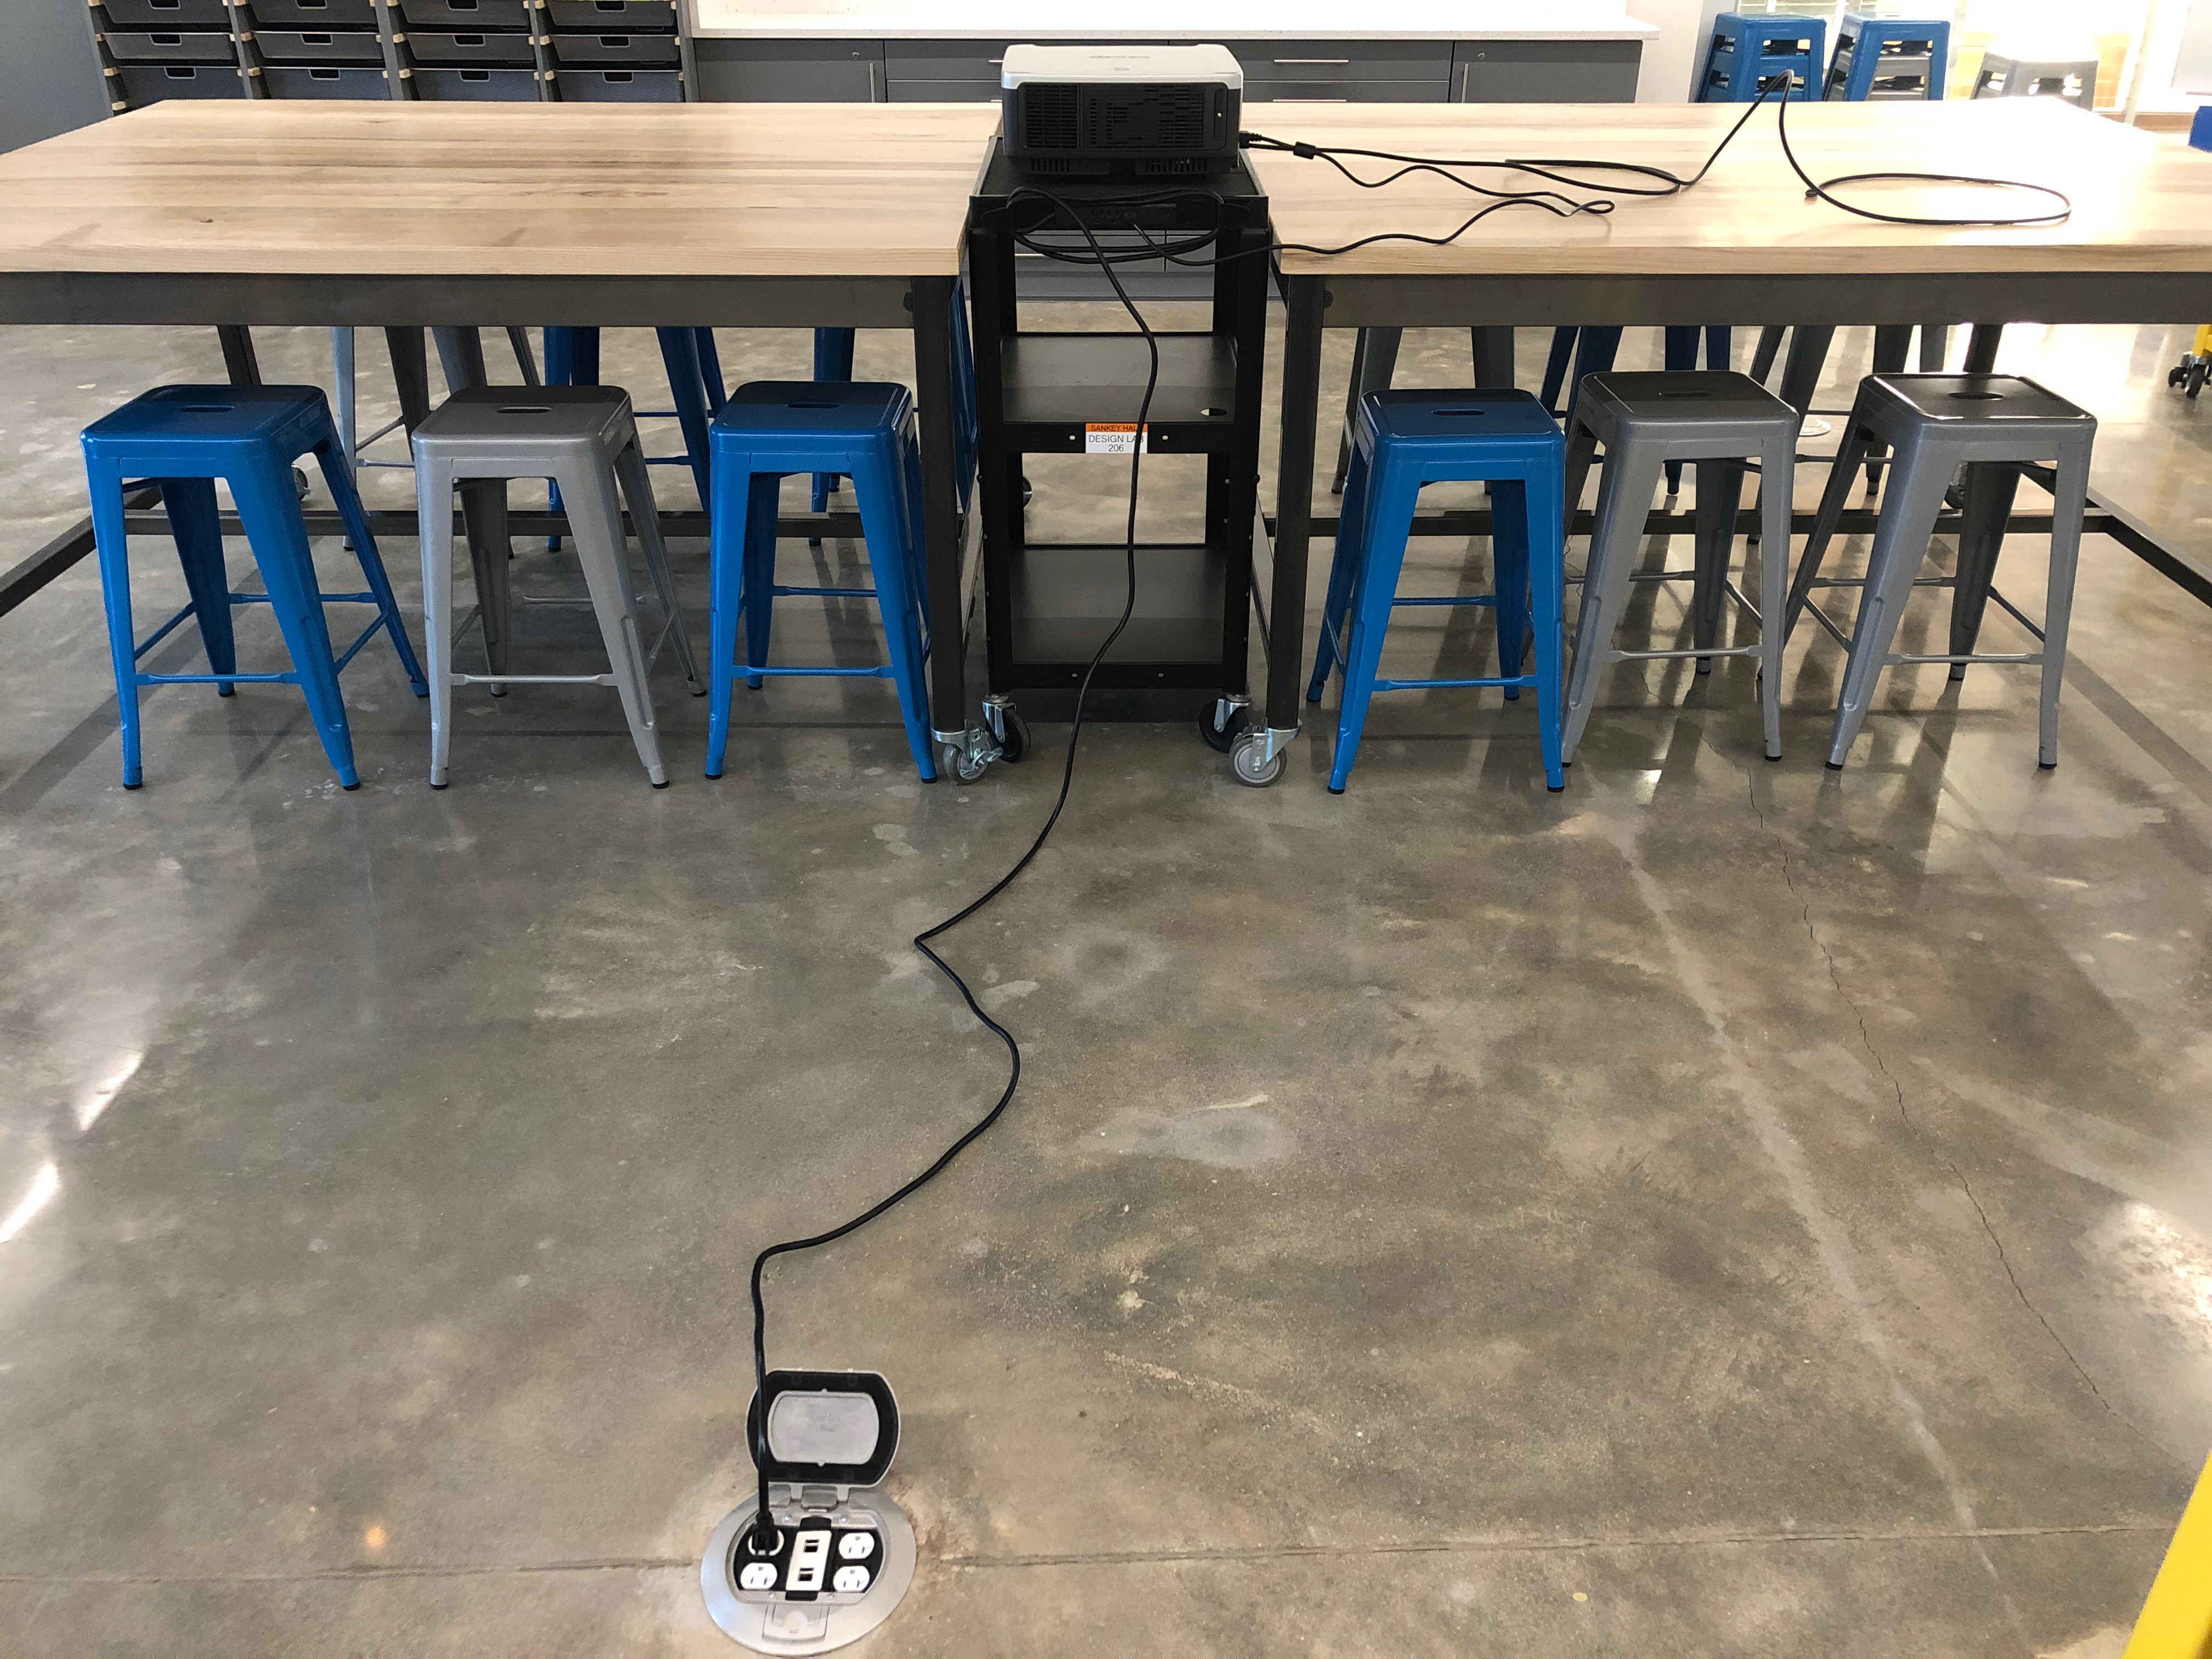 A photo from the back of the projector with the cord plugged in to the power outlet.